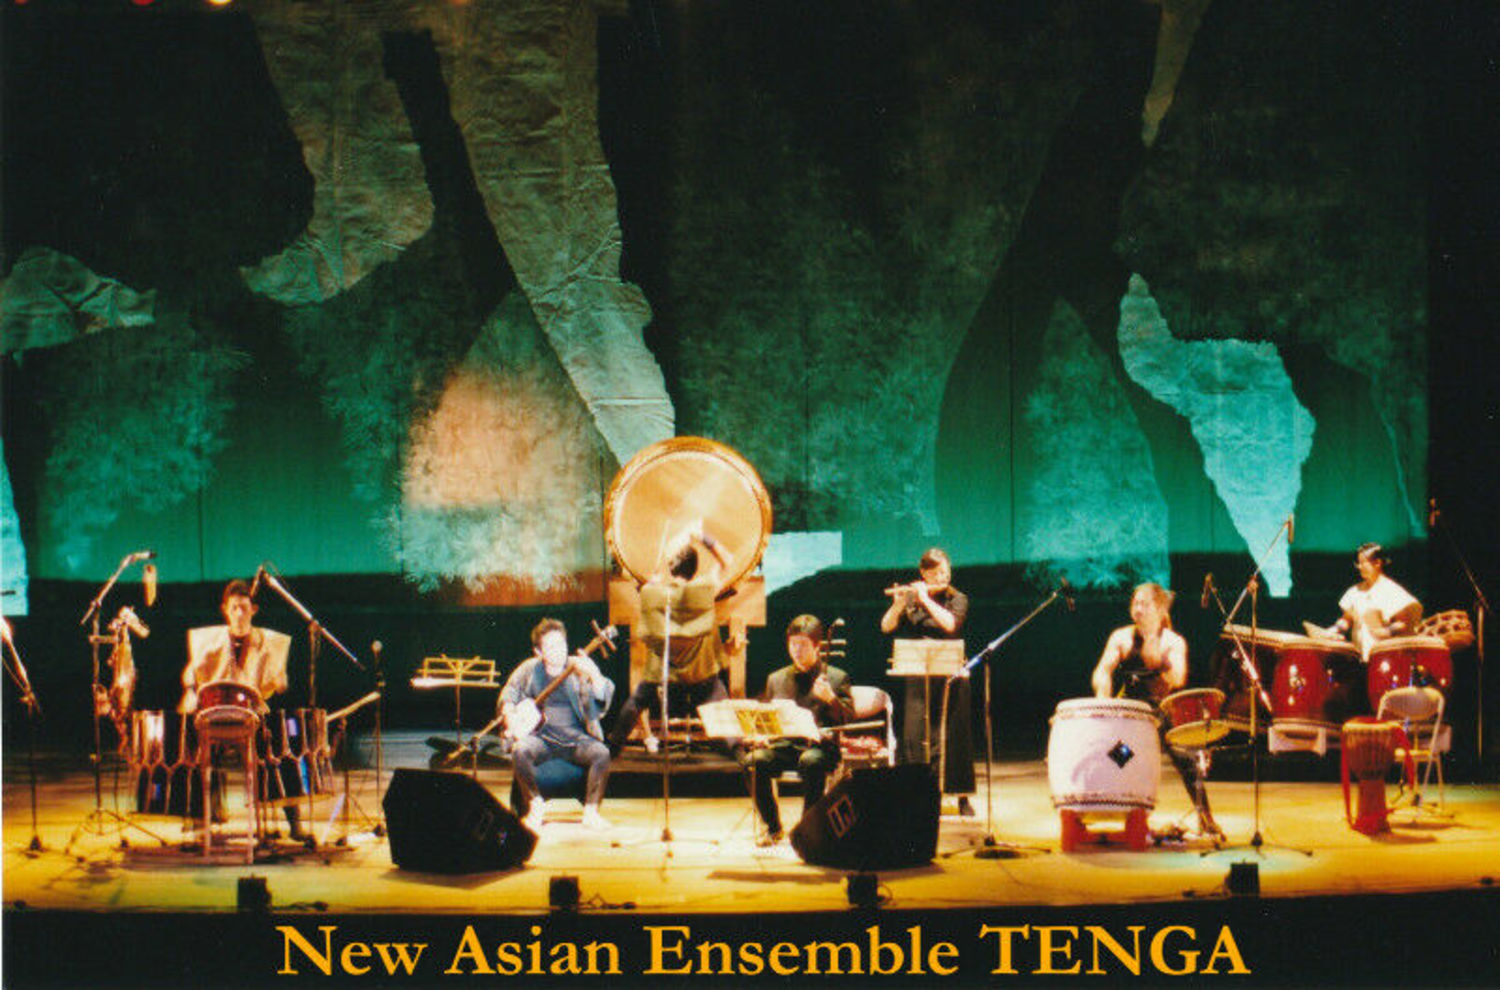 New Asian Ensemble TENGA